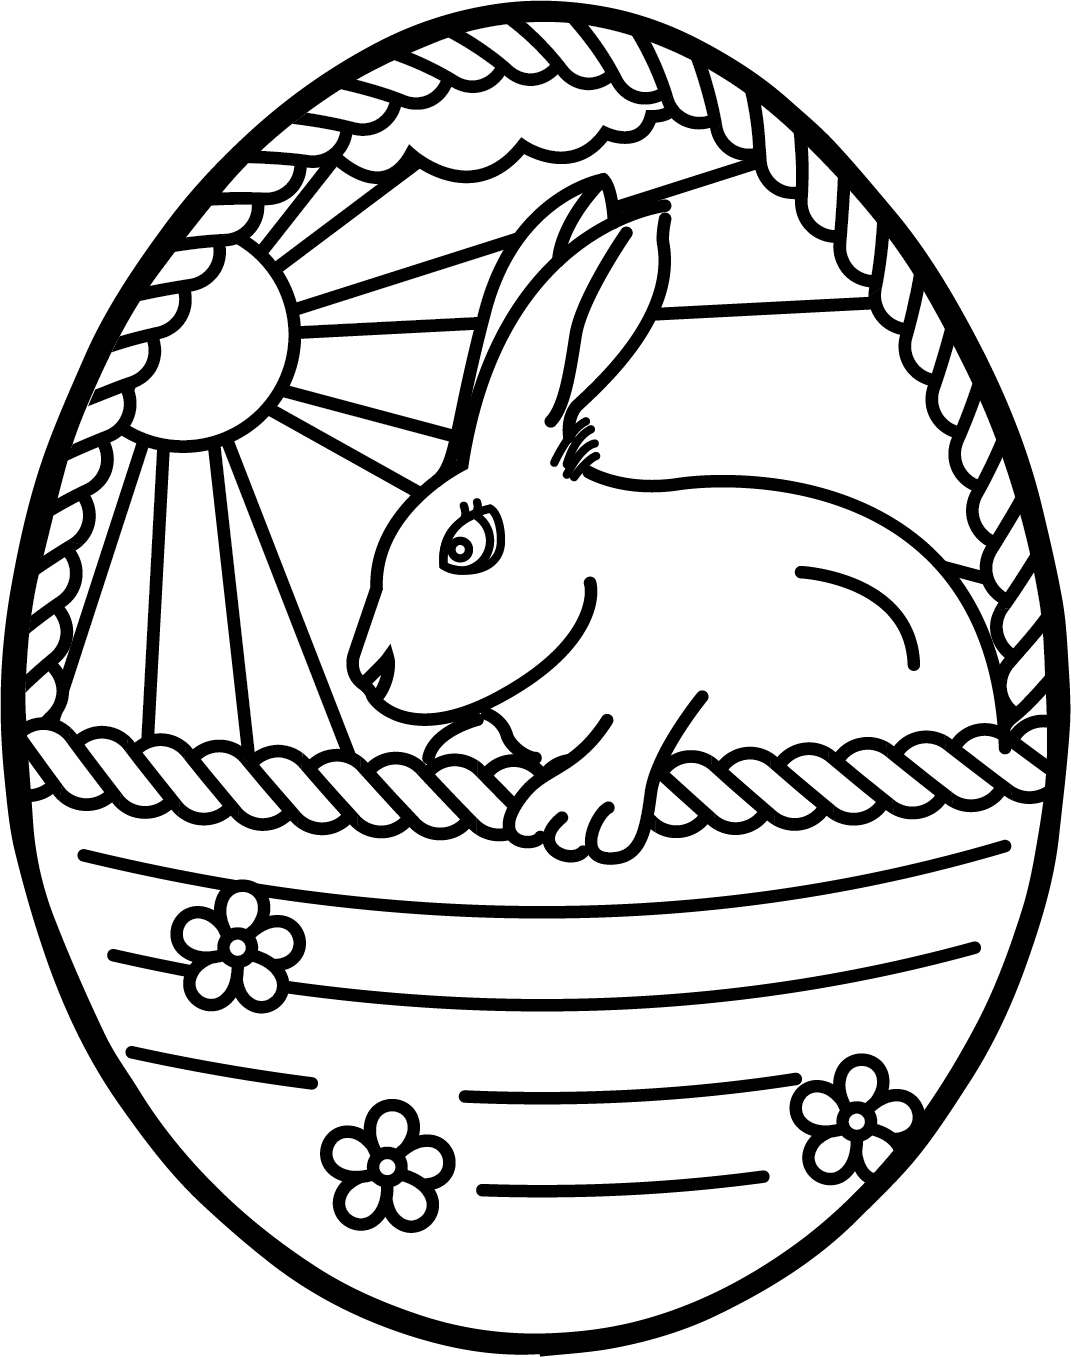 egg coloring sheet ready for an easter egg art hunt download these printable sheet coloring egg